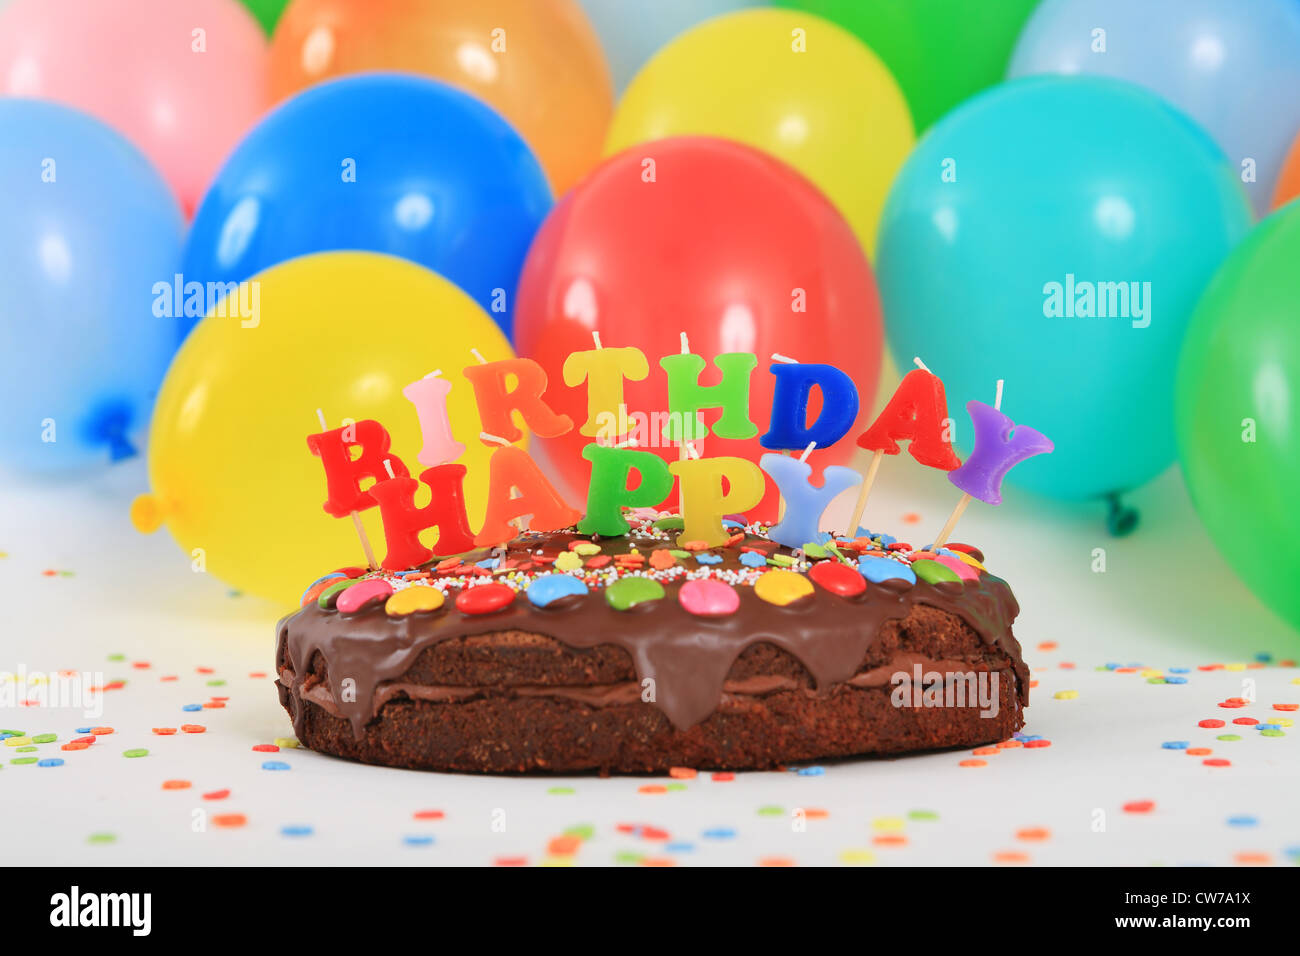 Happy Birthday Chocolate Cake With Candles And Balloons Stock Photo Alamy